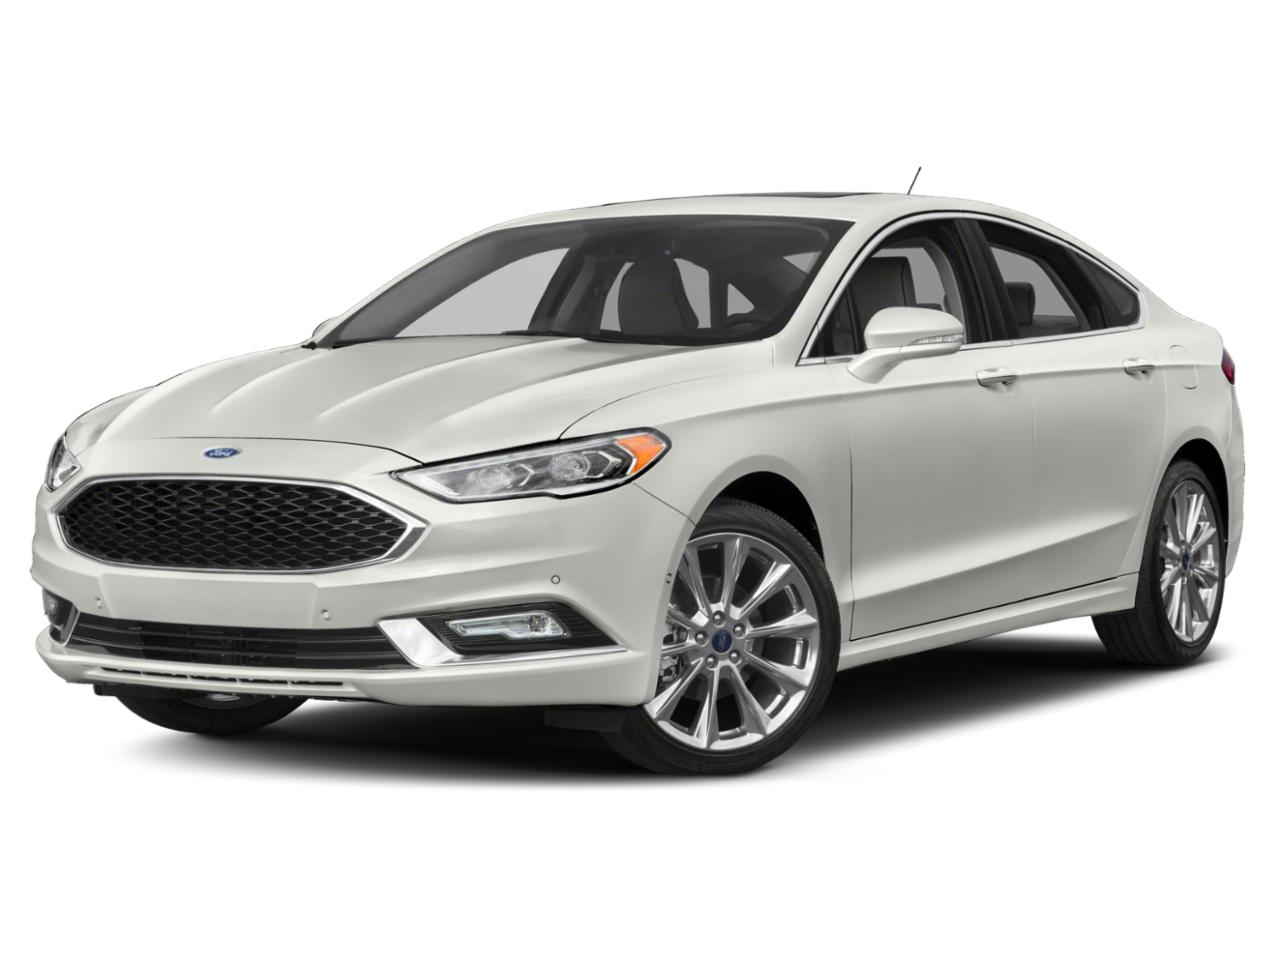 2018 Ford Fusion Vehicle Photo in AMERICAN FORK, UT 84003-3317